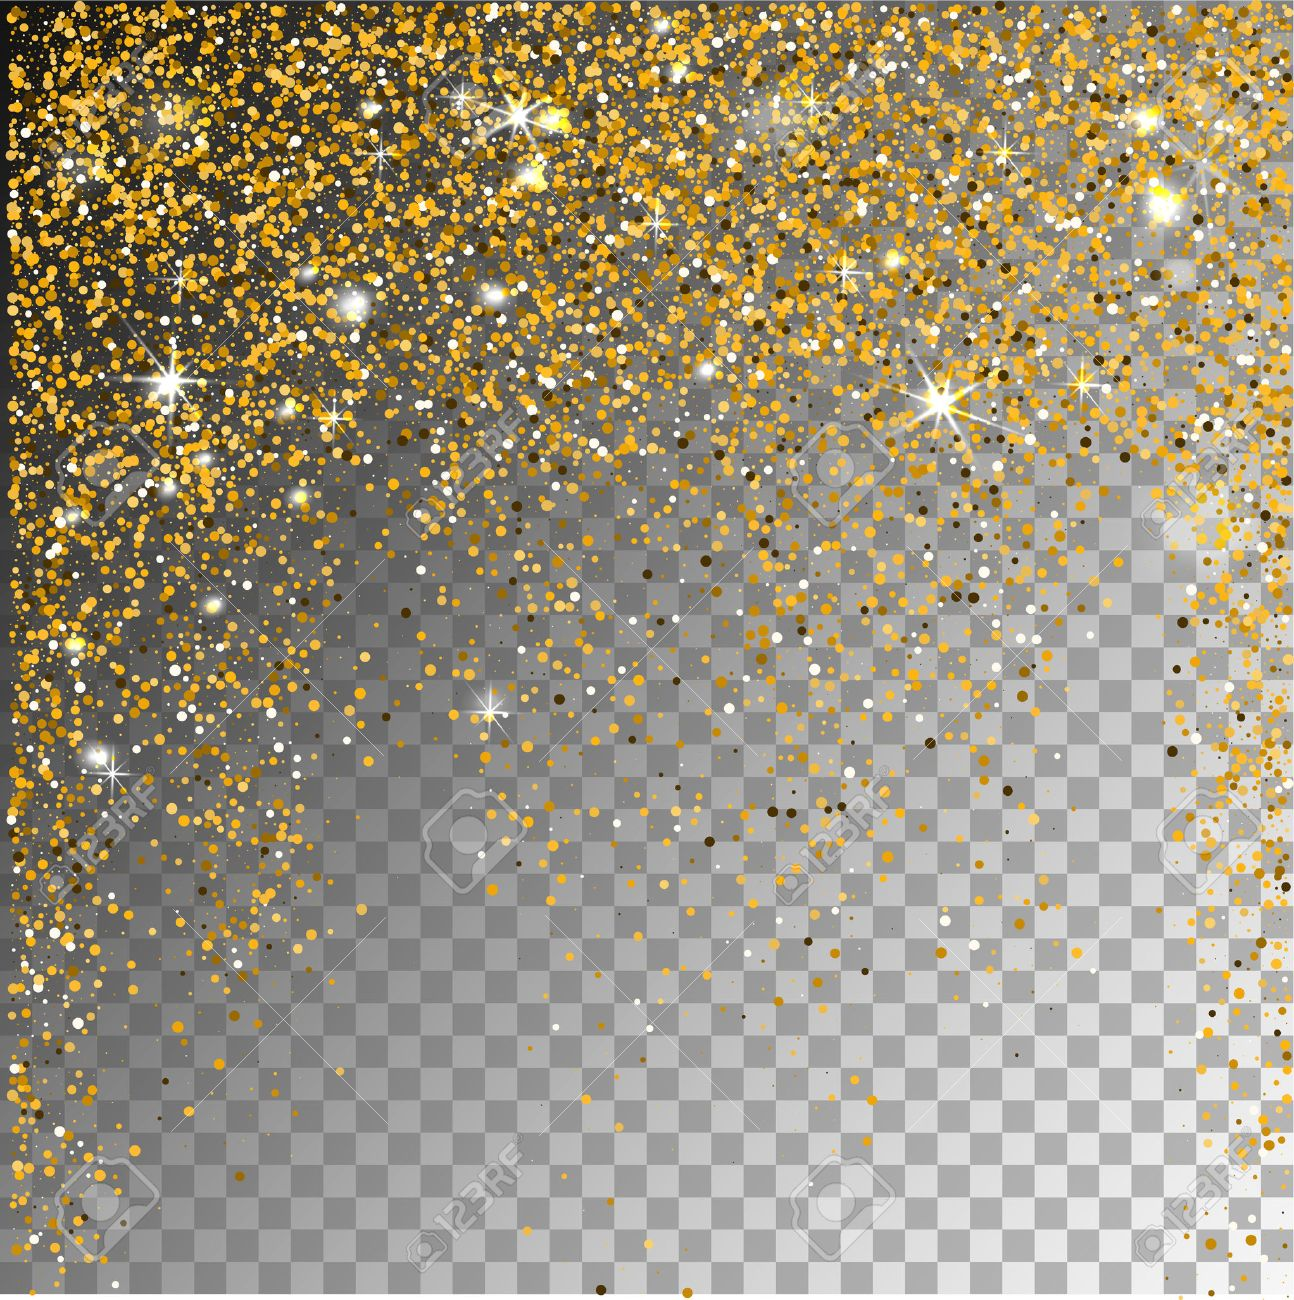 Gold glitter bright vector transparent background golden sparkles - Falling Snow Gold Glitter Particles On A Transparent Sparcle Background Abstract Snowflake Background Vector